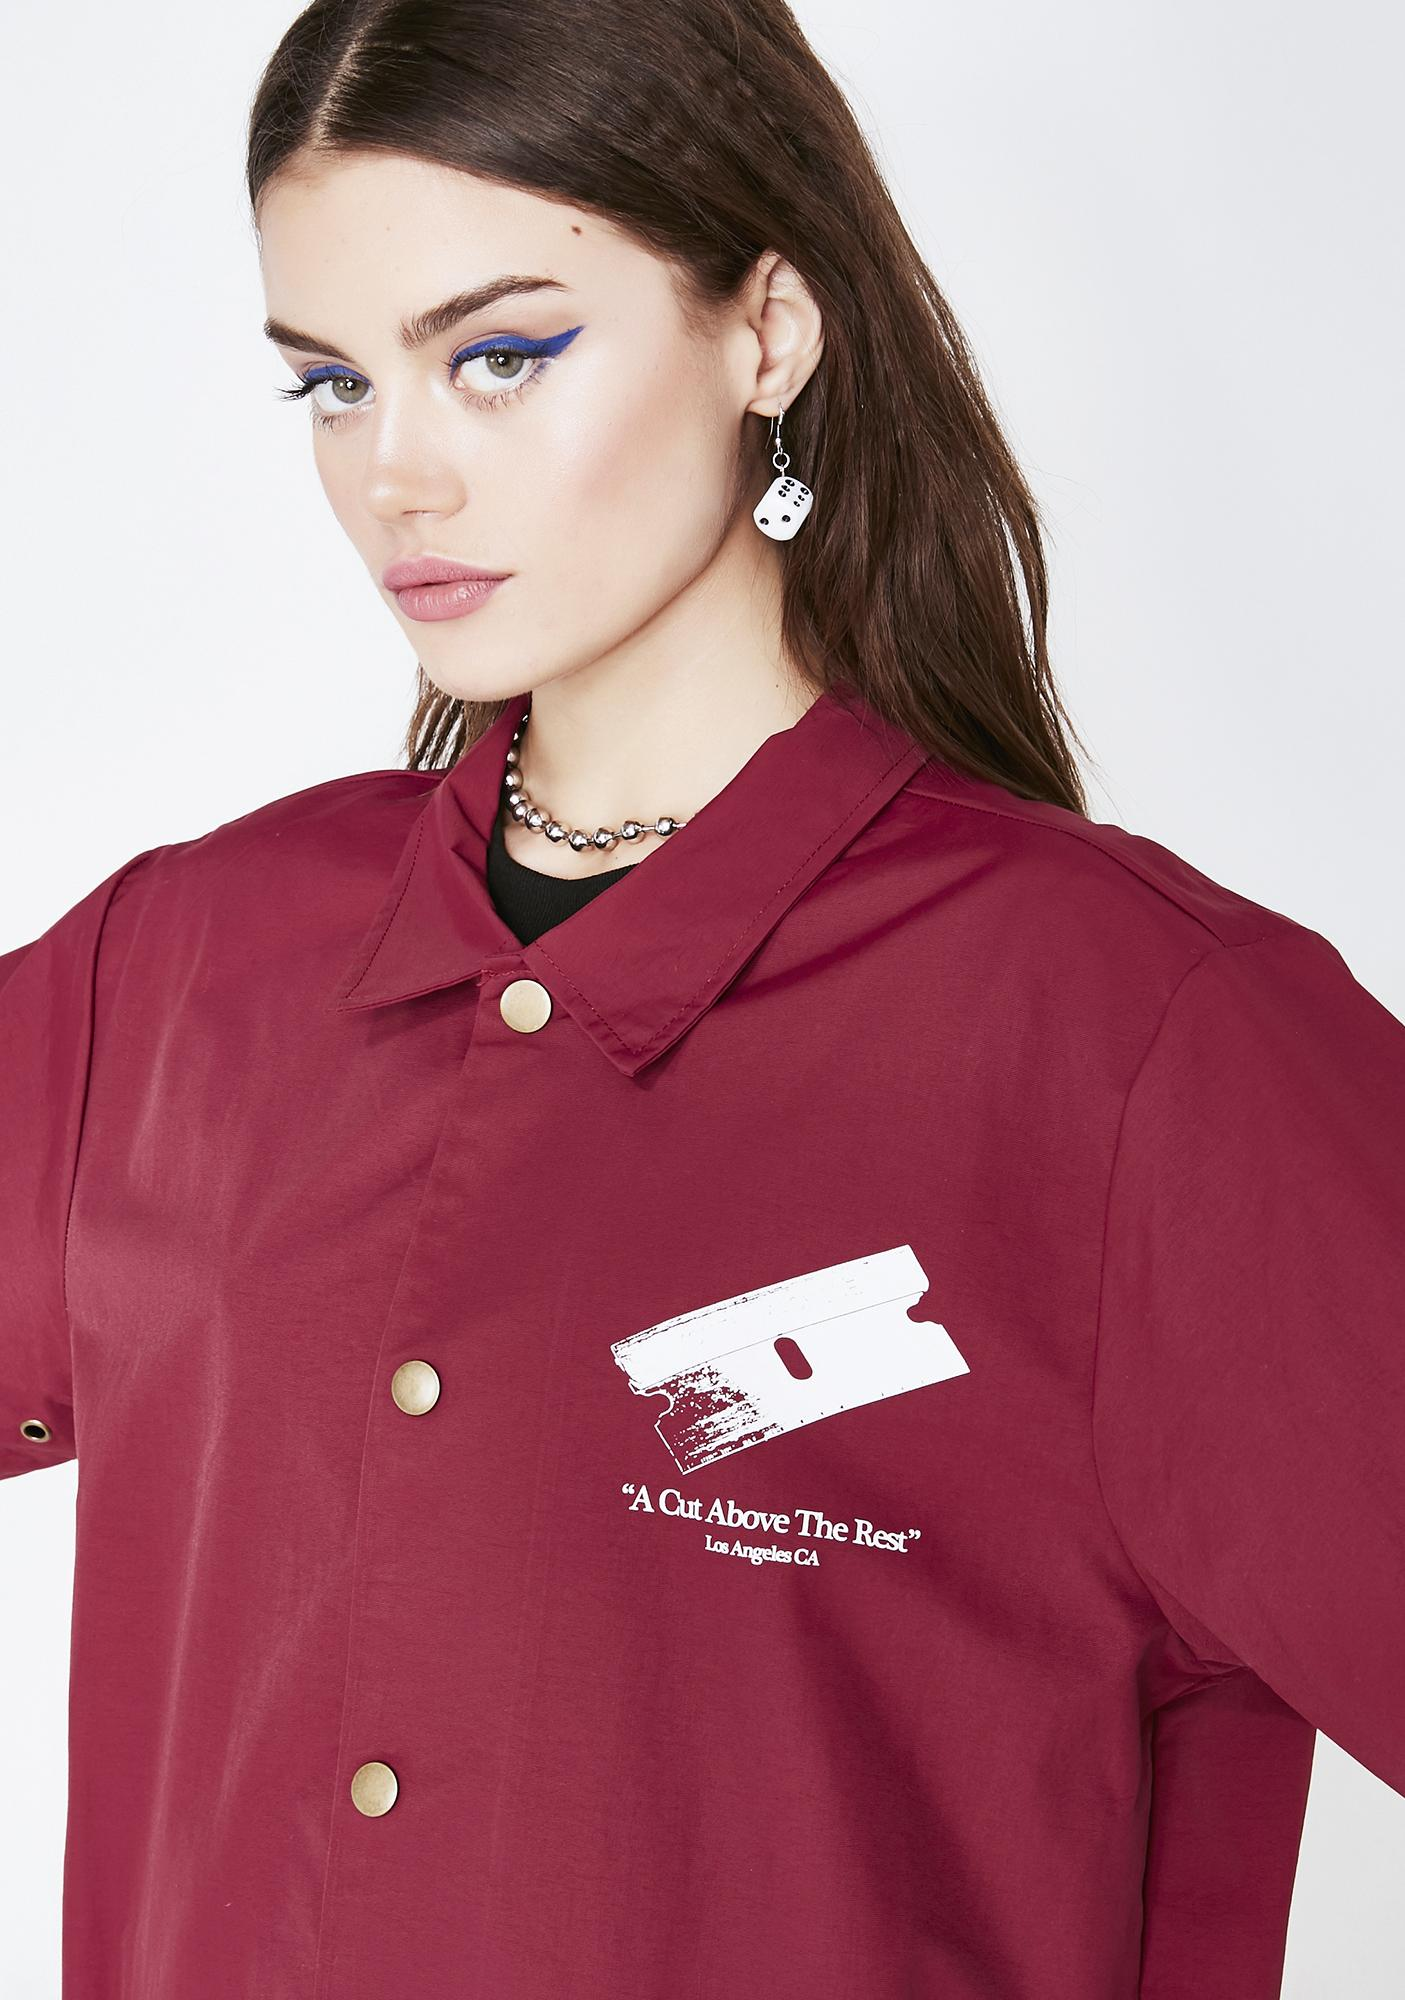 Youth Machine Cutters Coaches Jacket